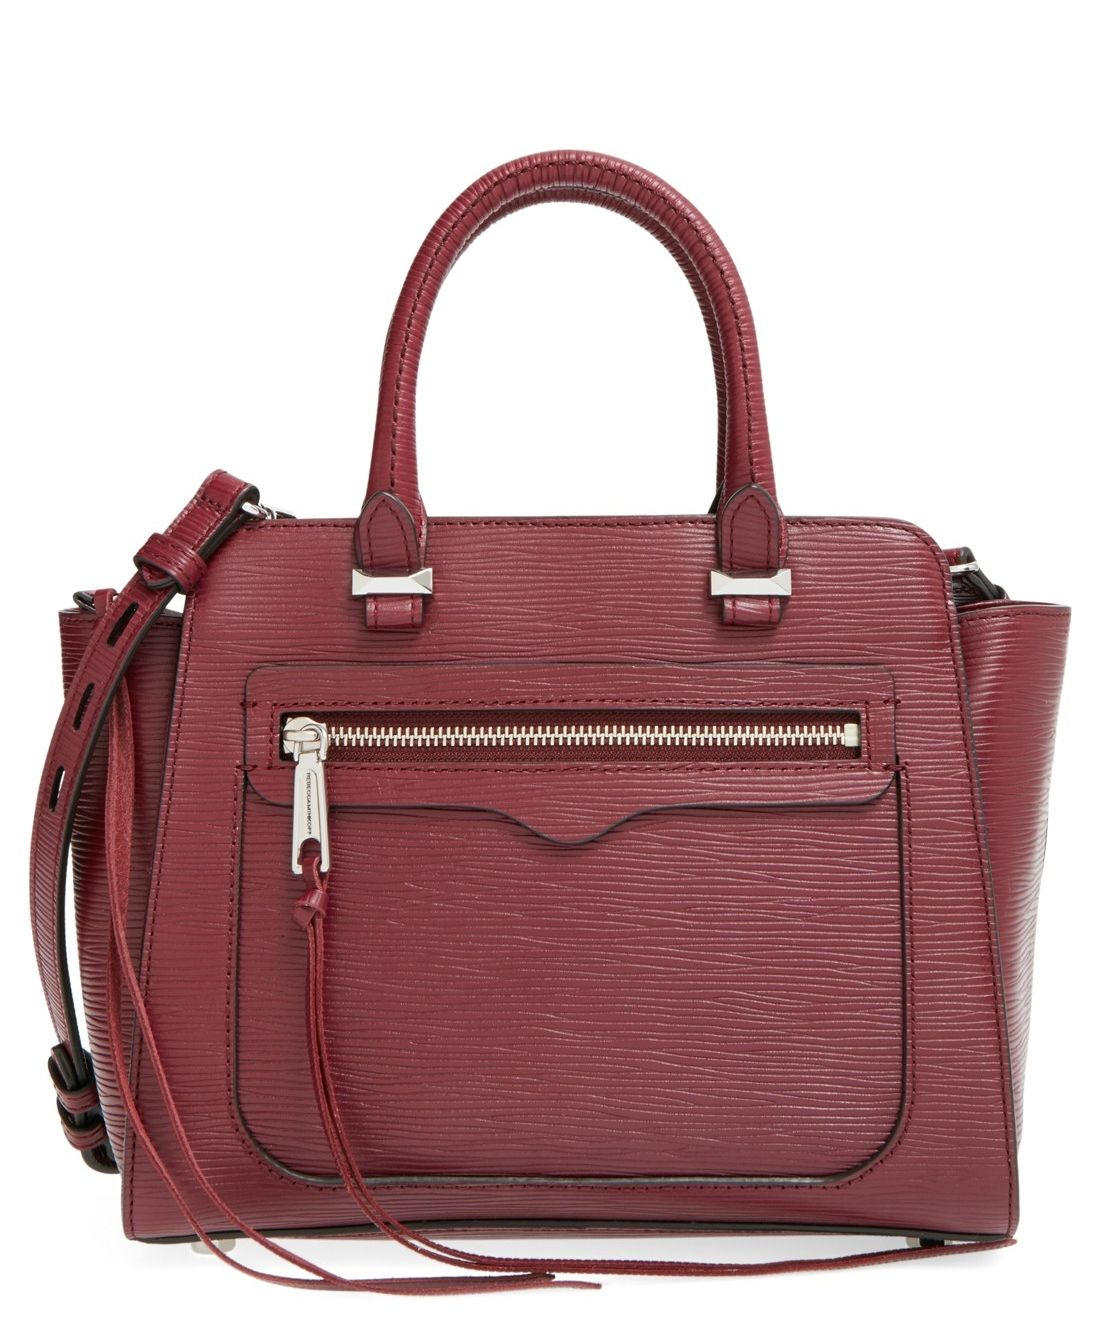 The structured silhouette of this burgundy Rebecca Minkoff tote makes it a classic addition to the fall wardrobe.